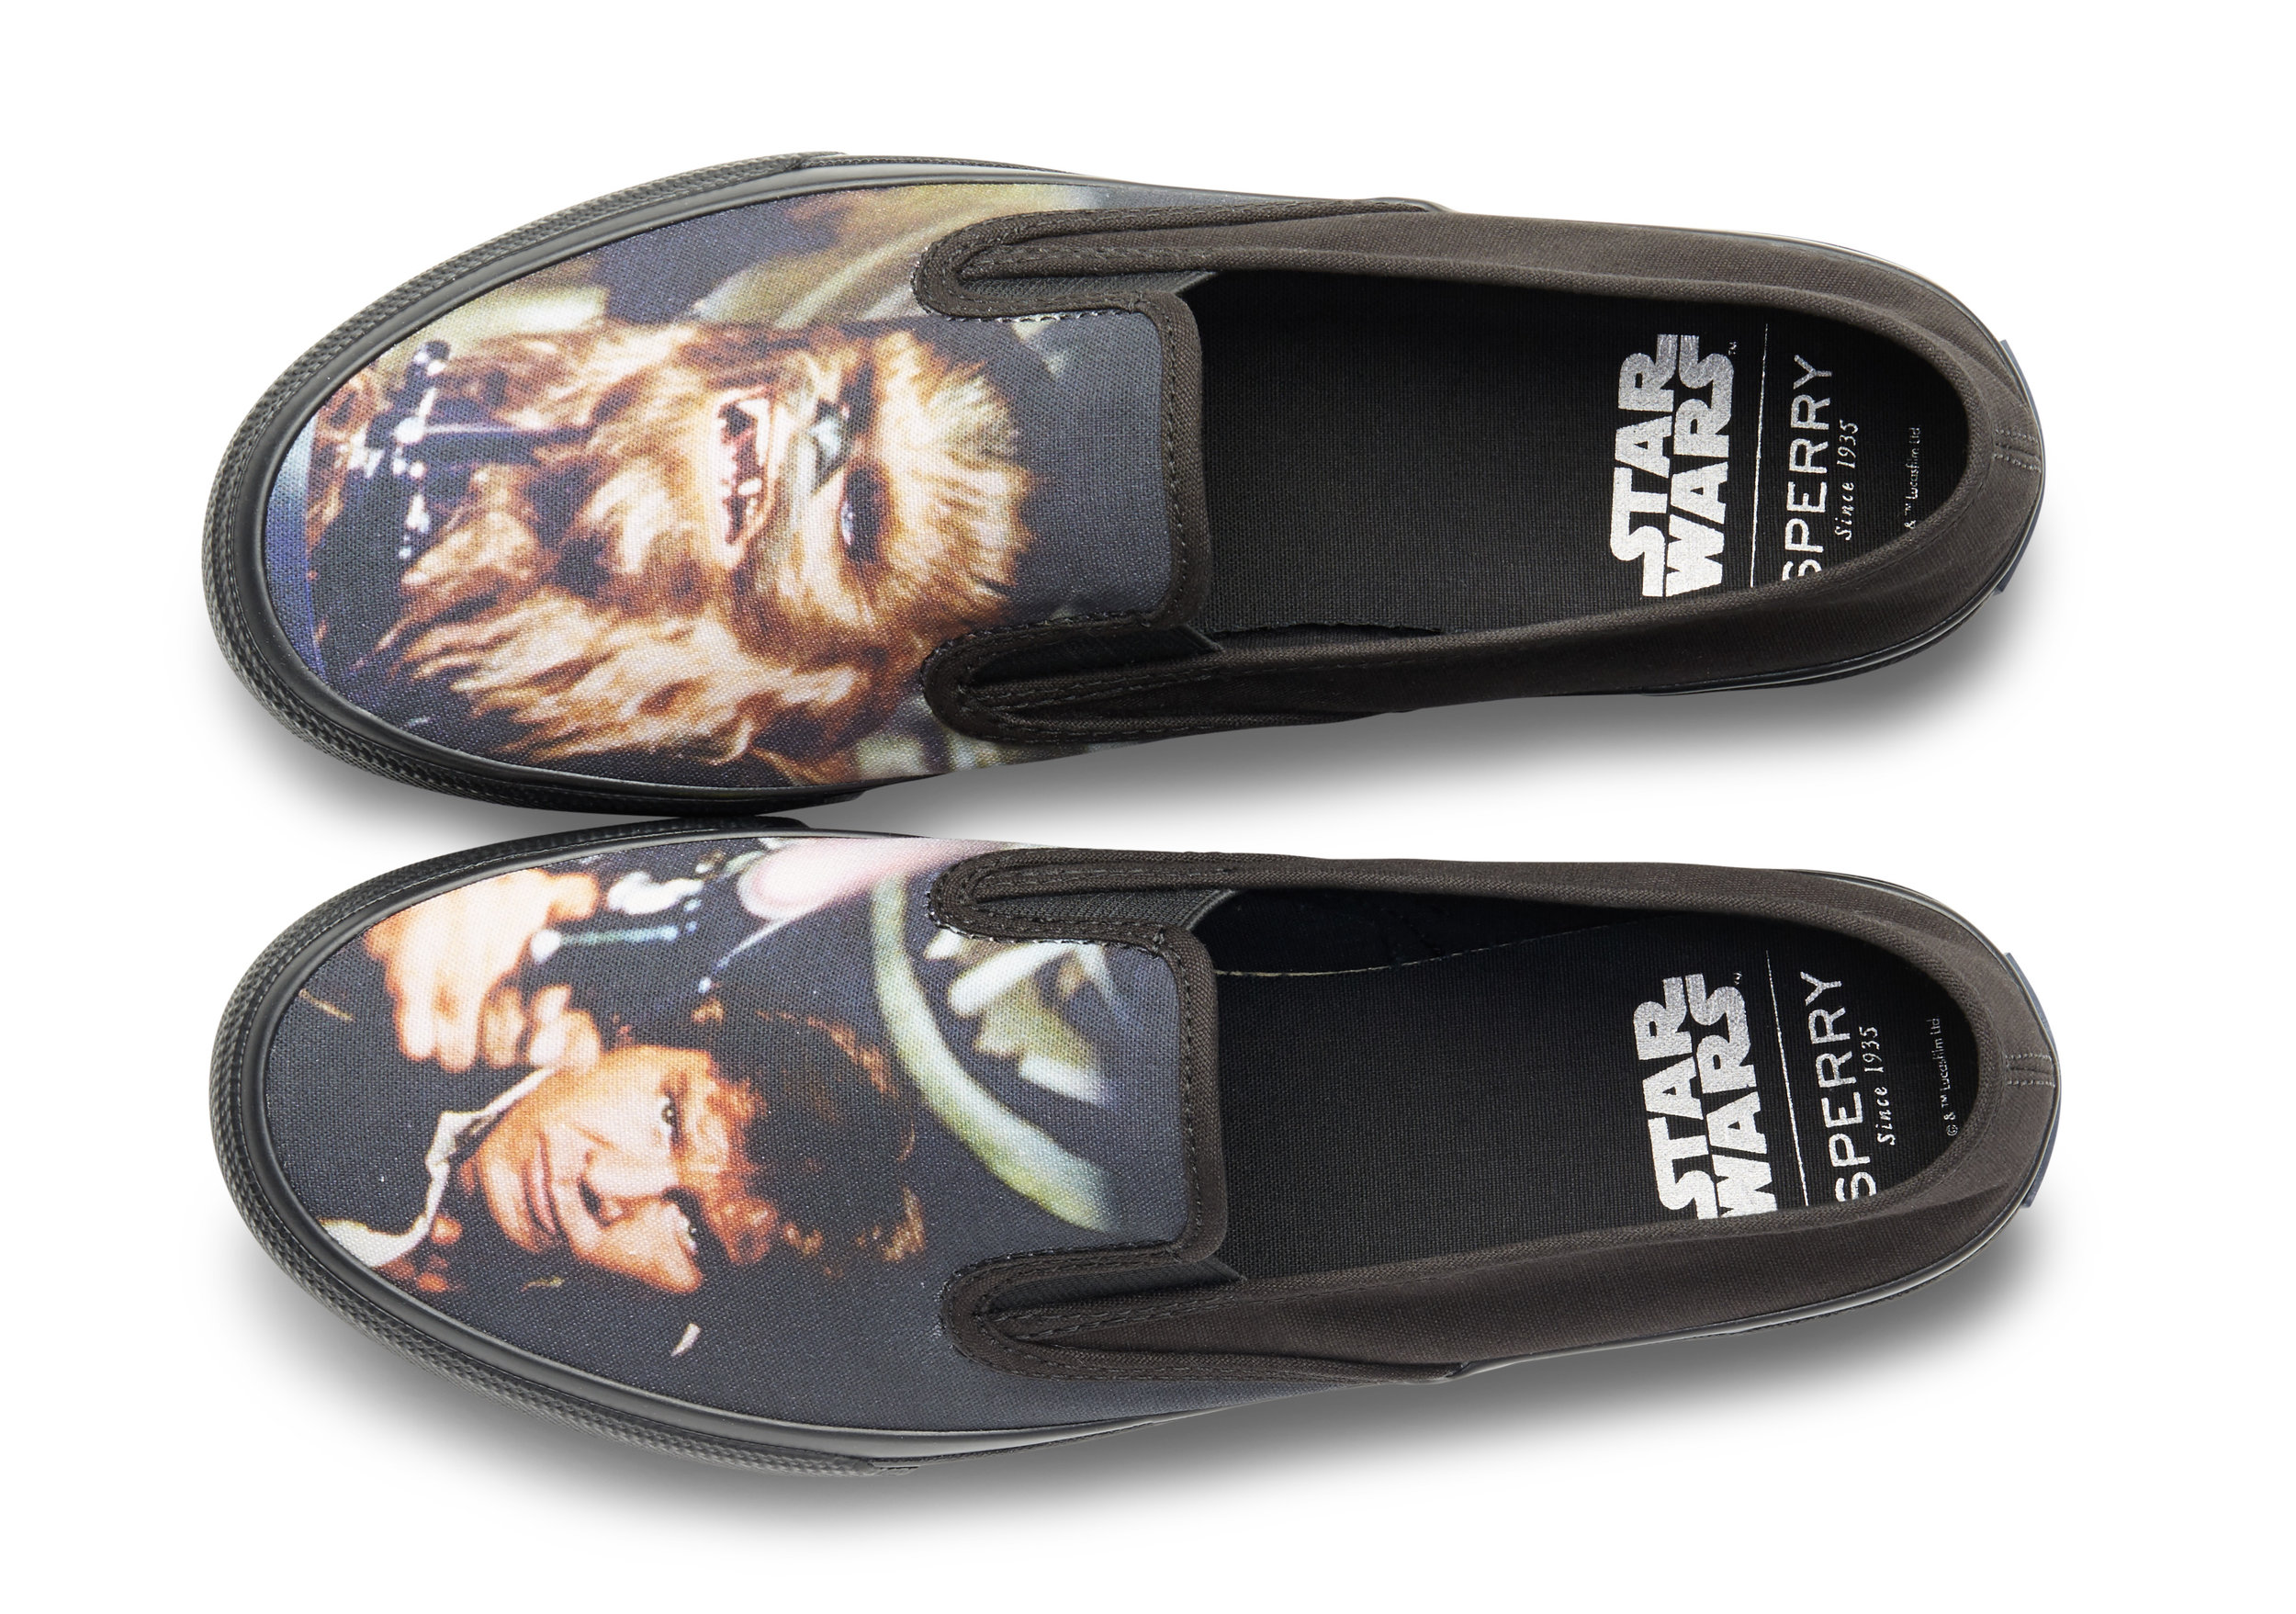 check-out-this-cool-line-of-star-wars-themed-shoes-from-sperry8.jpg